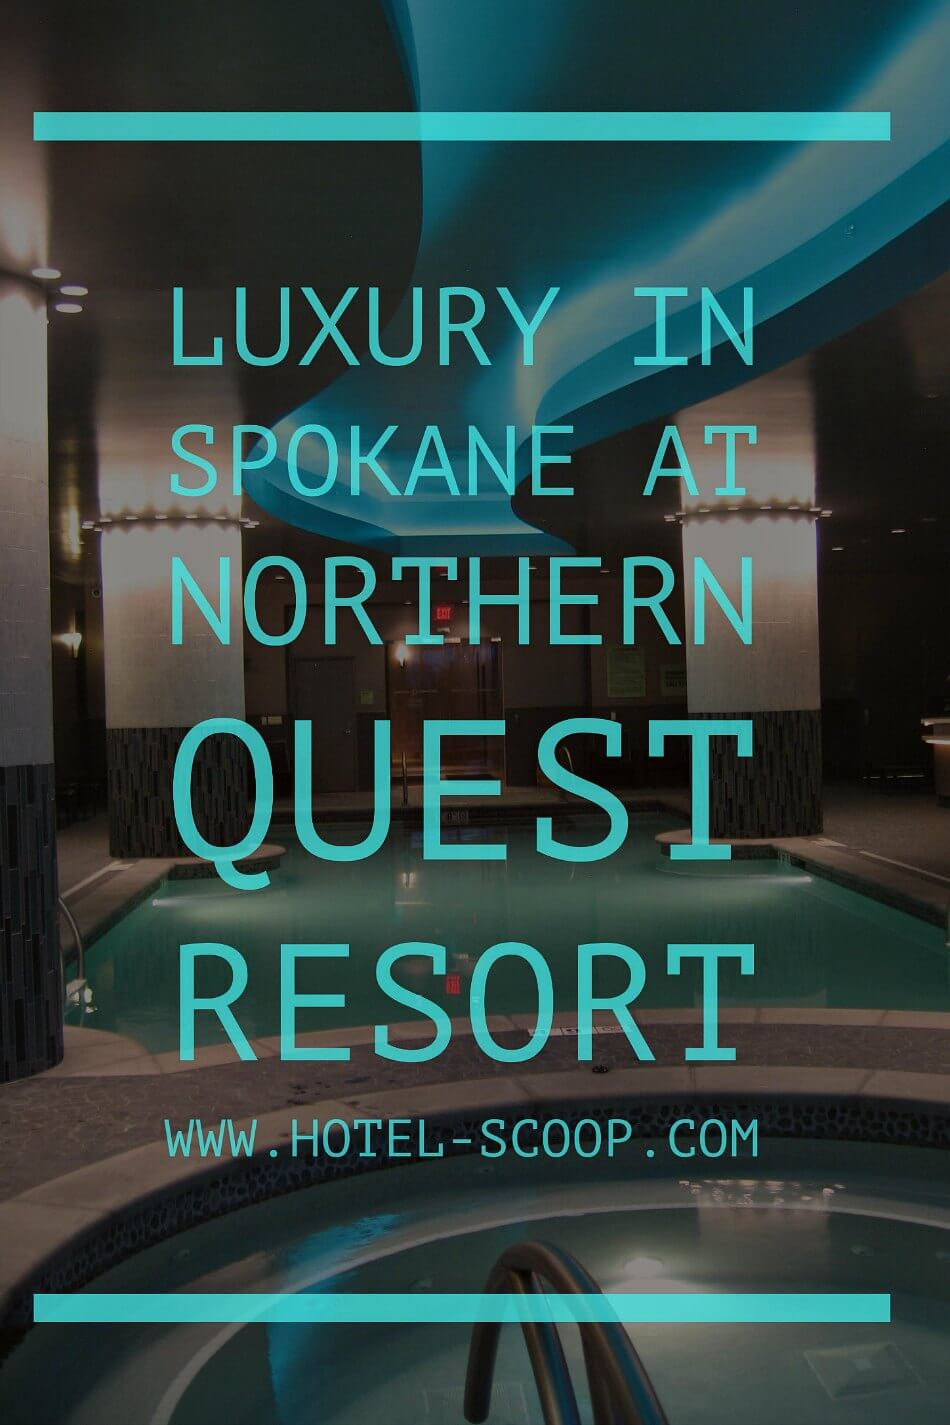 North quest casino spokane free online slot machines with bonus rounds no download